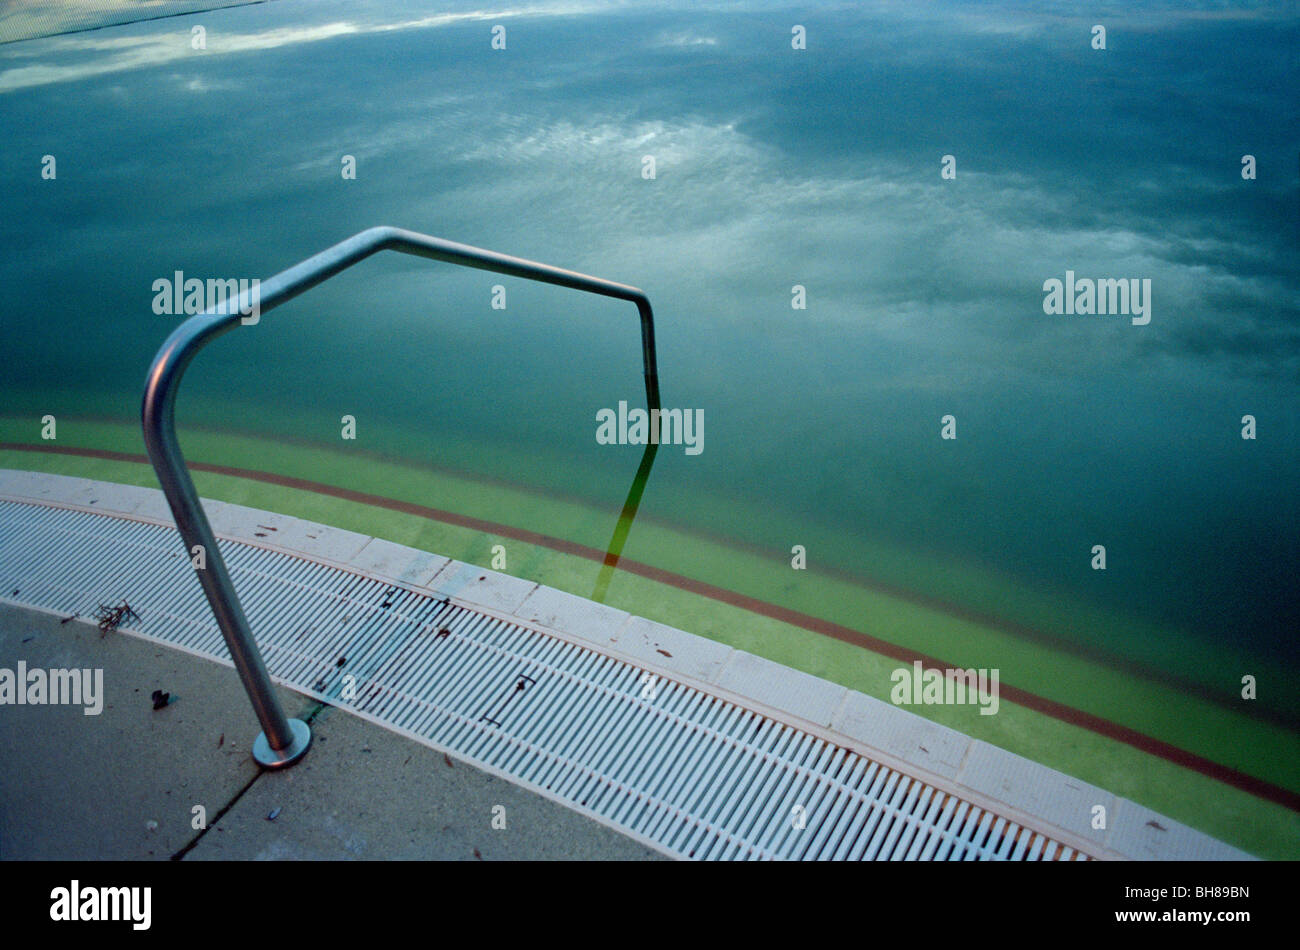 Edge of a murky swimming pool - Stock Image